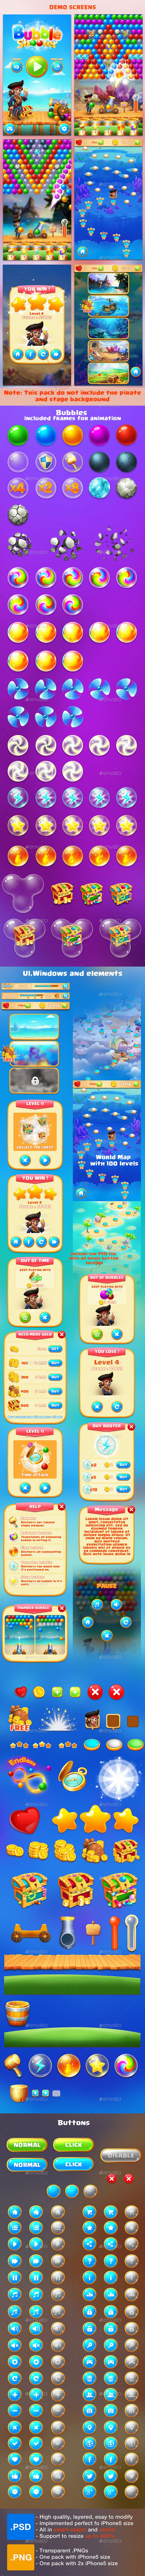 Bubble Shooter - Game Assets - Game Kits Game Assets #mobile #game #ui